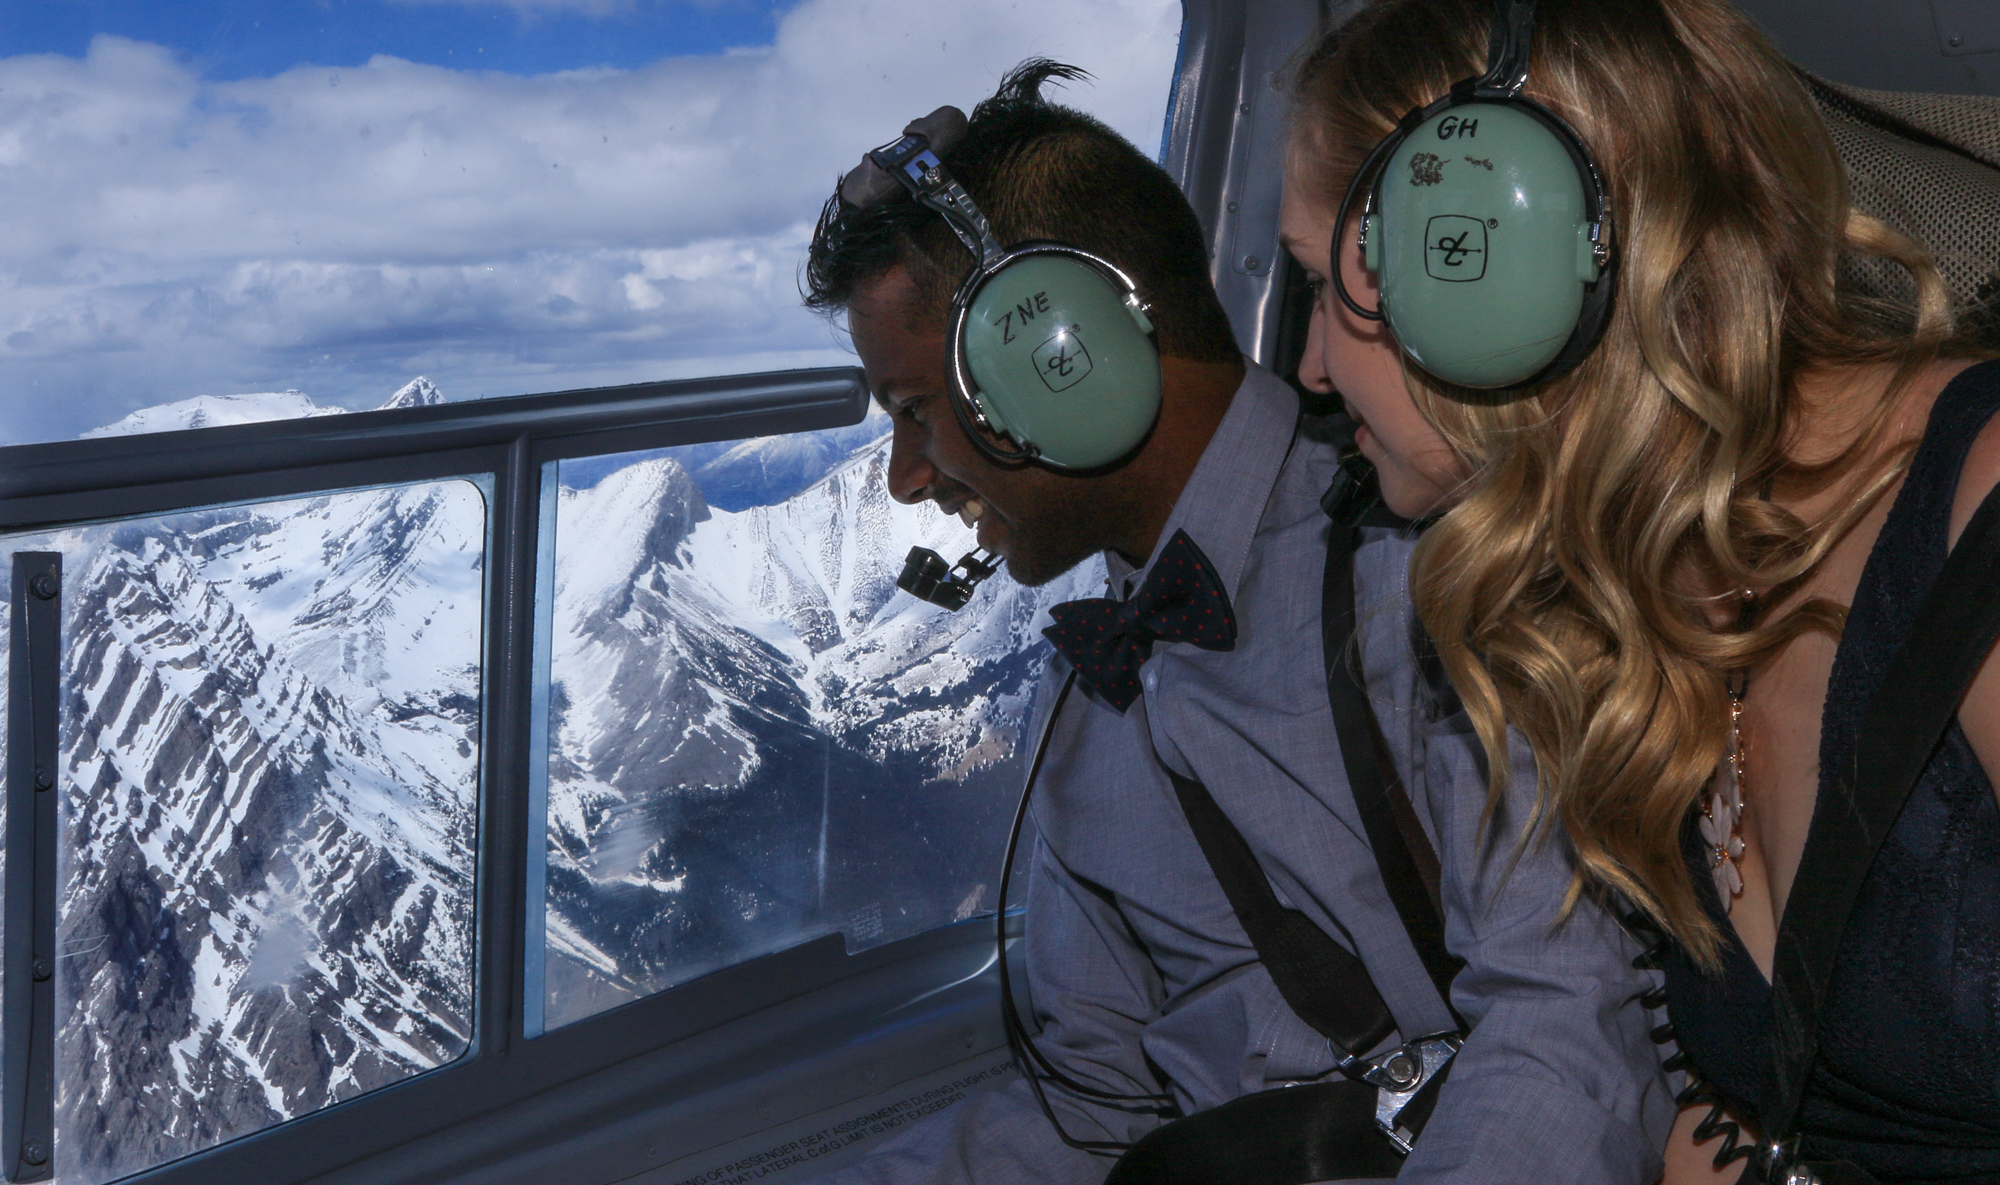 Helicopter proposal in the mountains, Banff wedding photographers, Burnett Photography